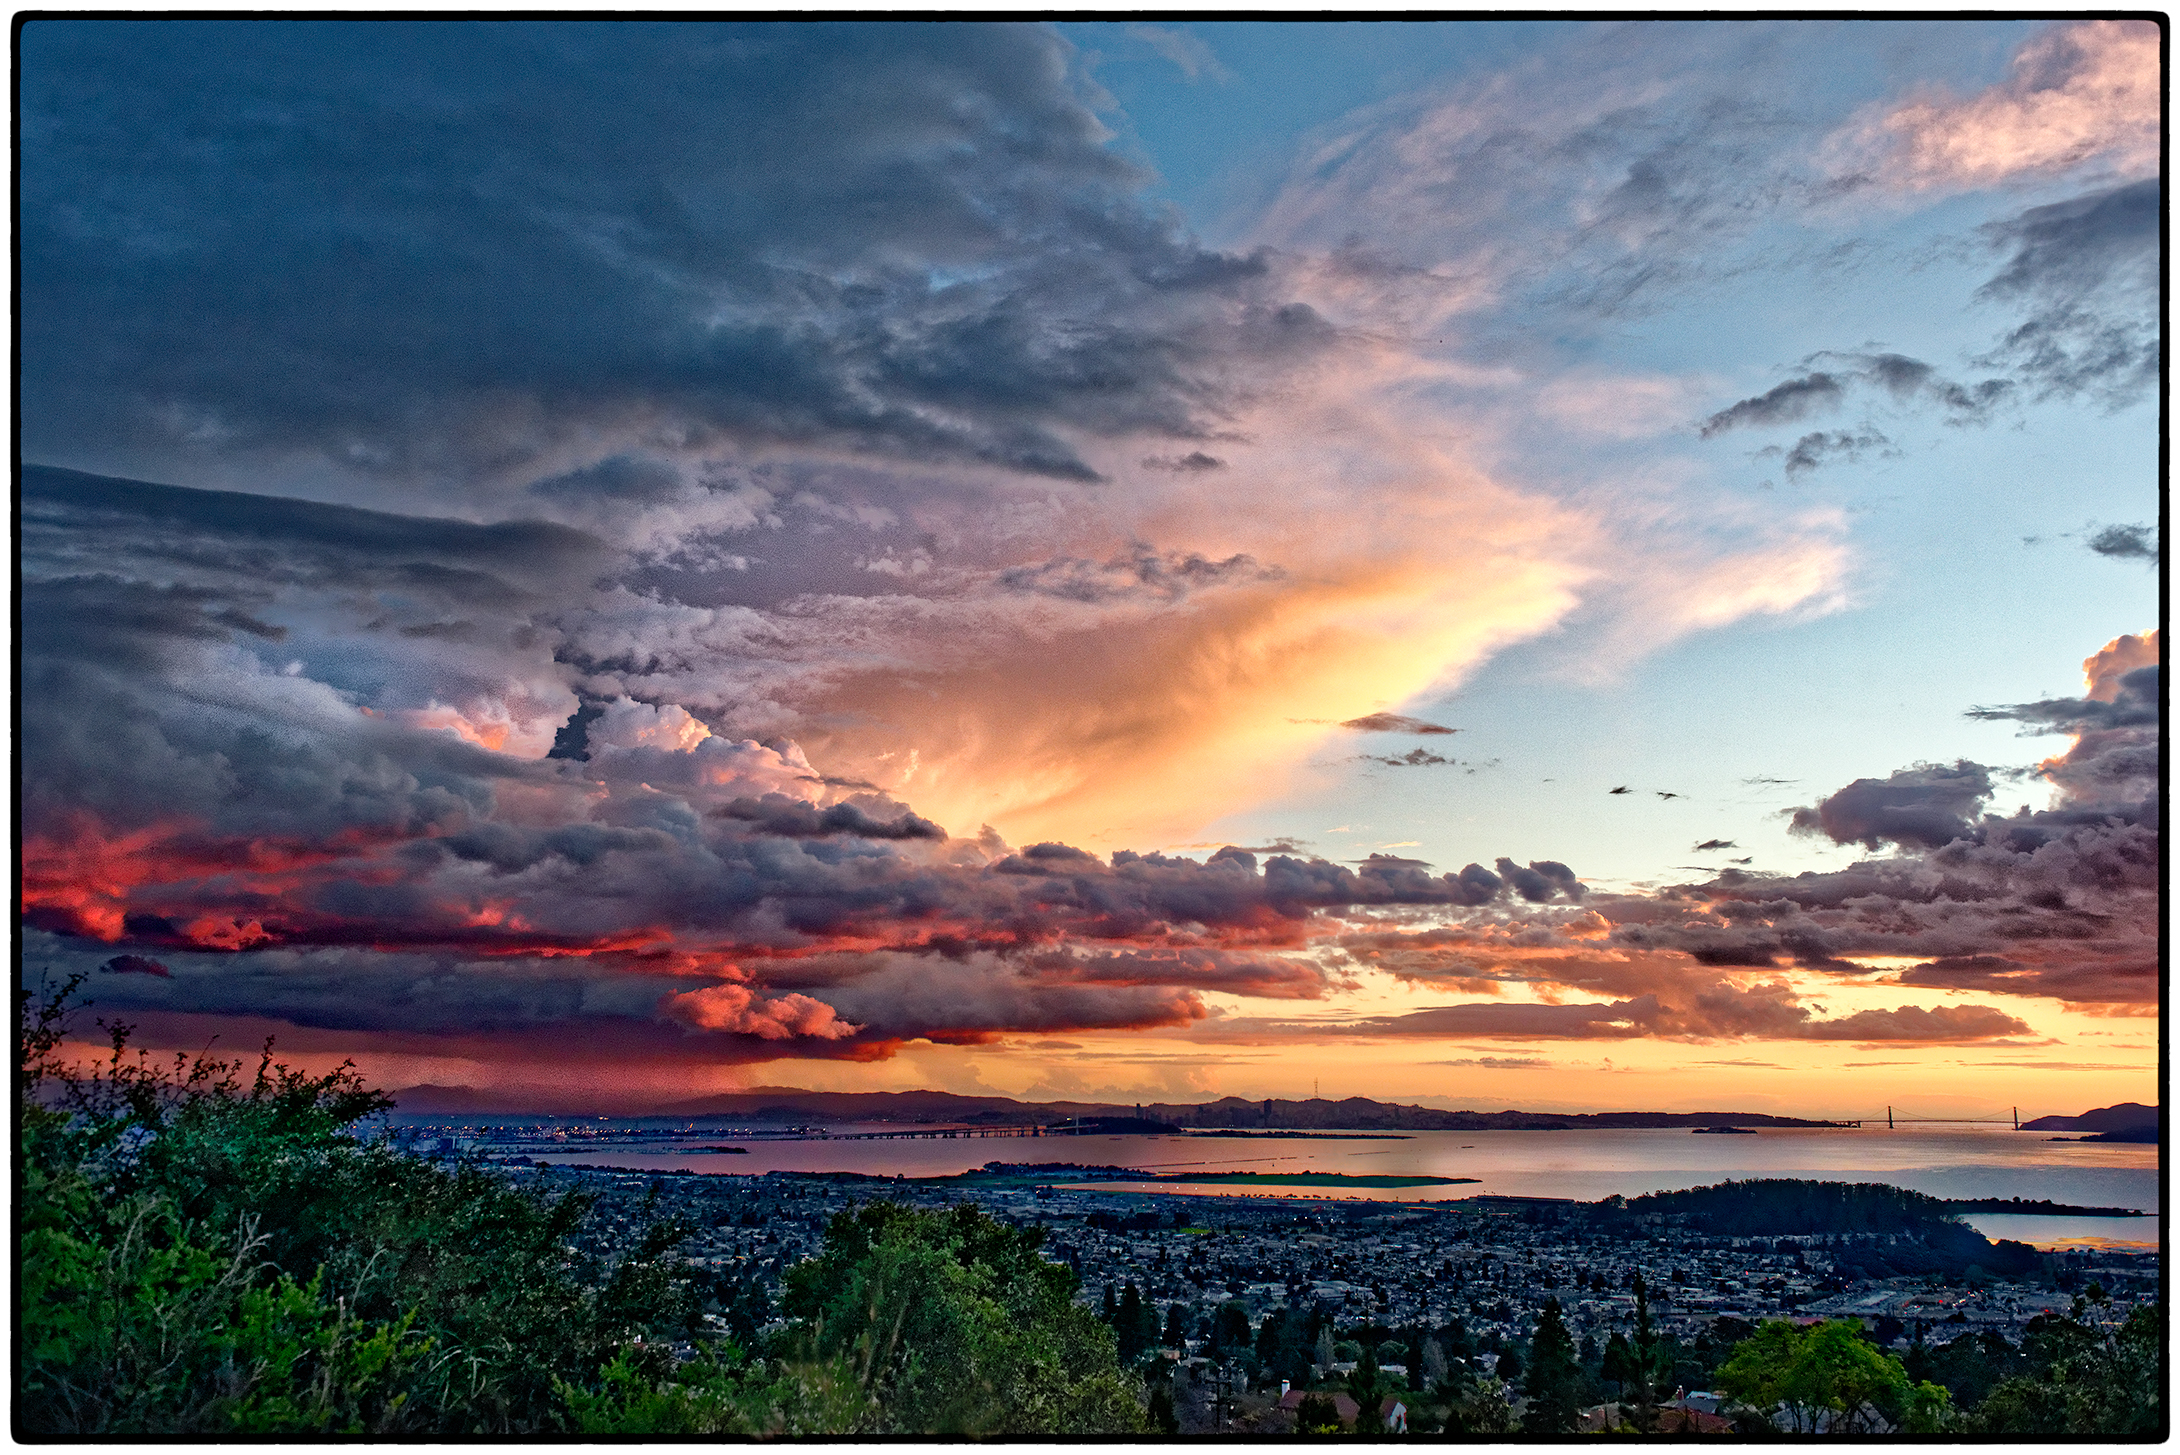 Sunset and Thunderstorm, SF, February 2015